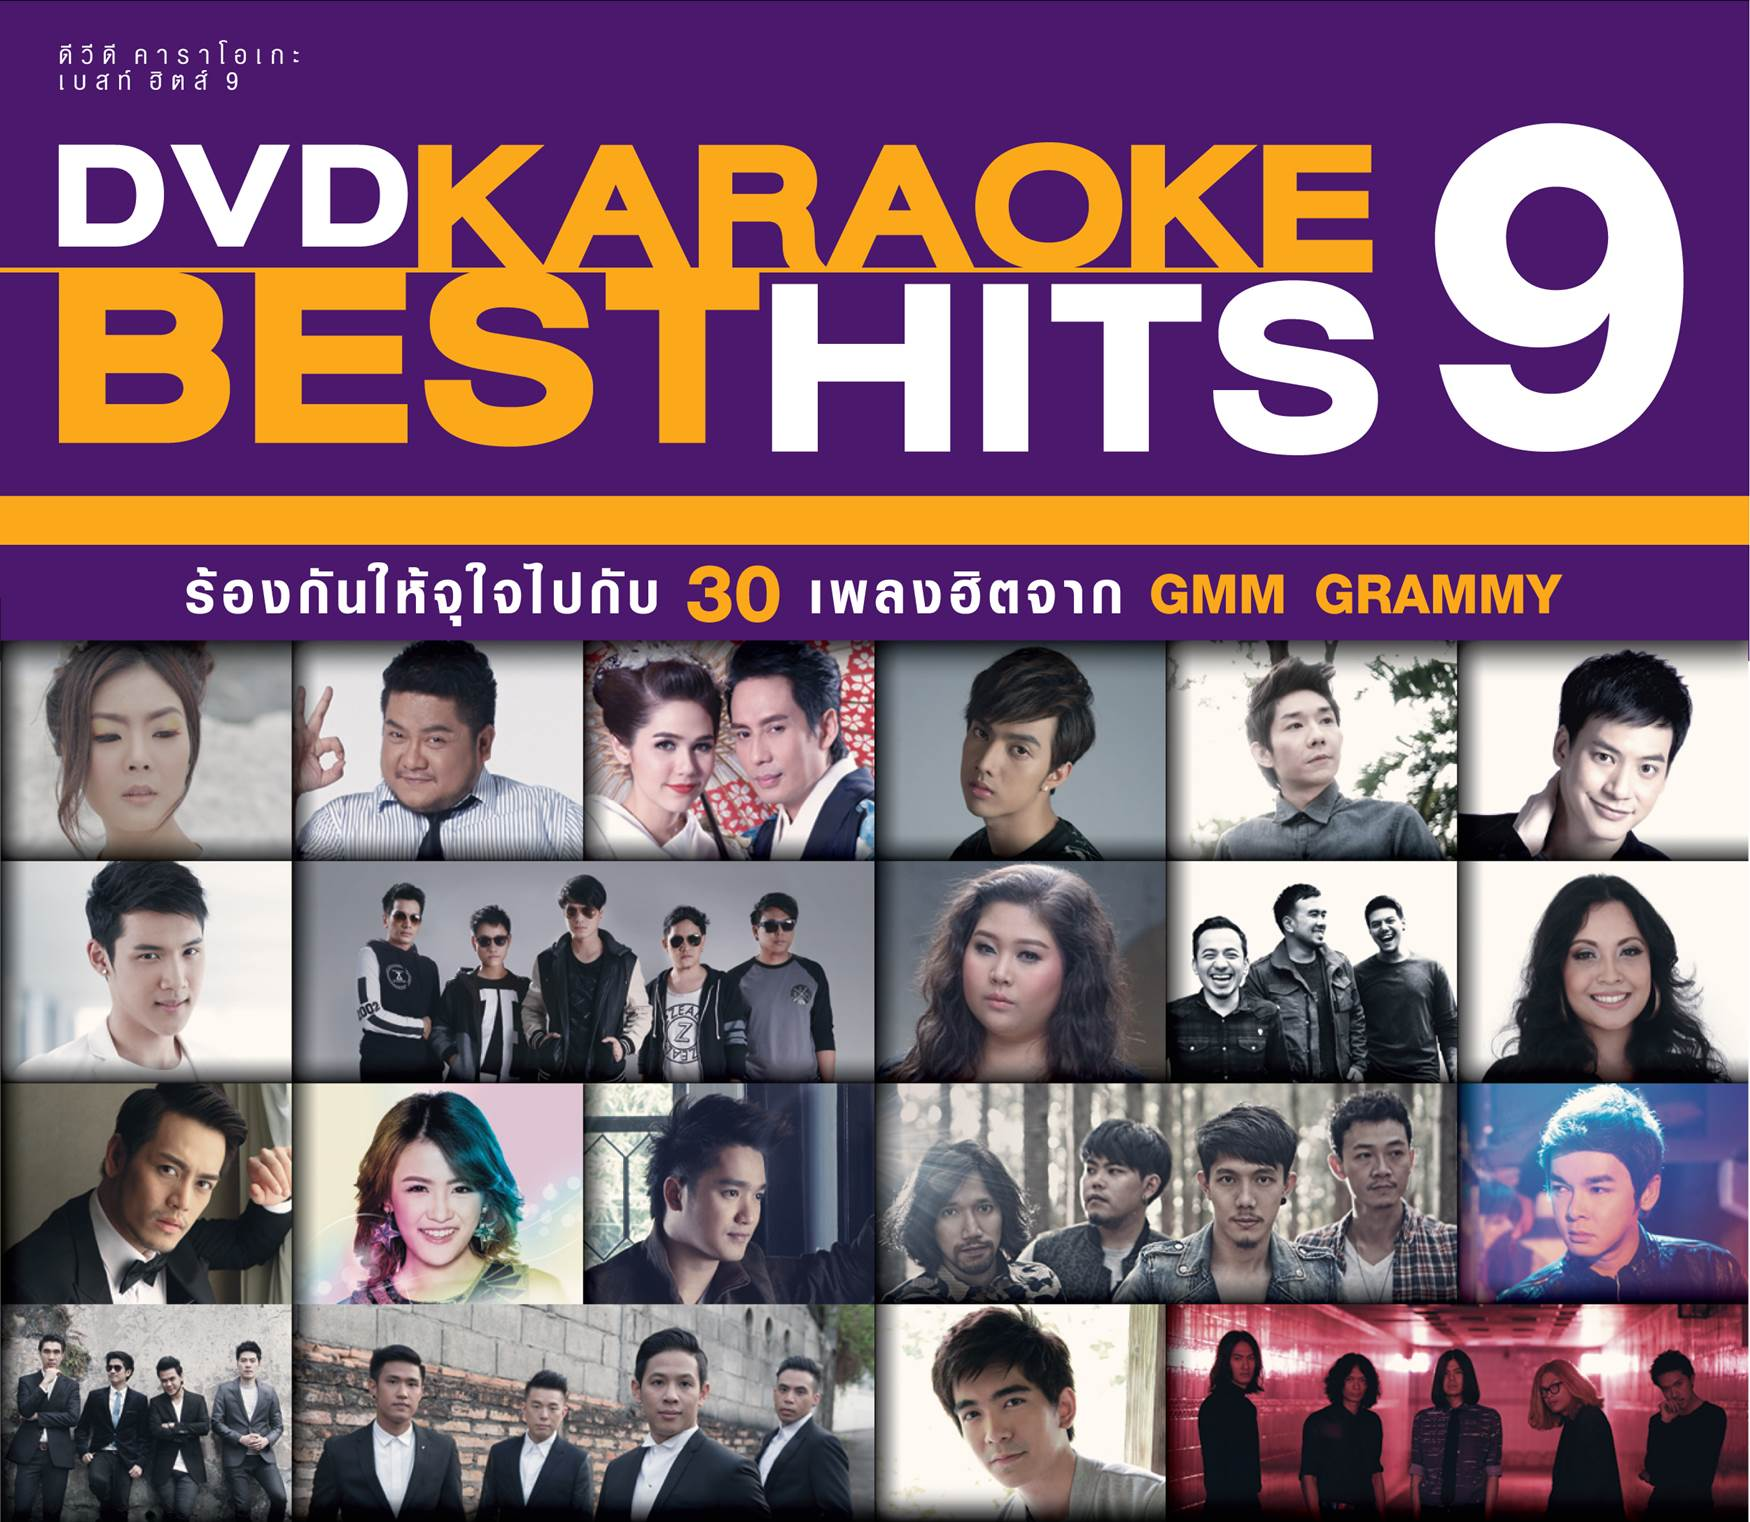 dvd KARAOKE BEST HITS Vol.9 ราคา 165 บาท